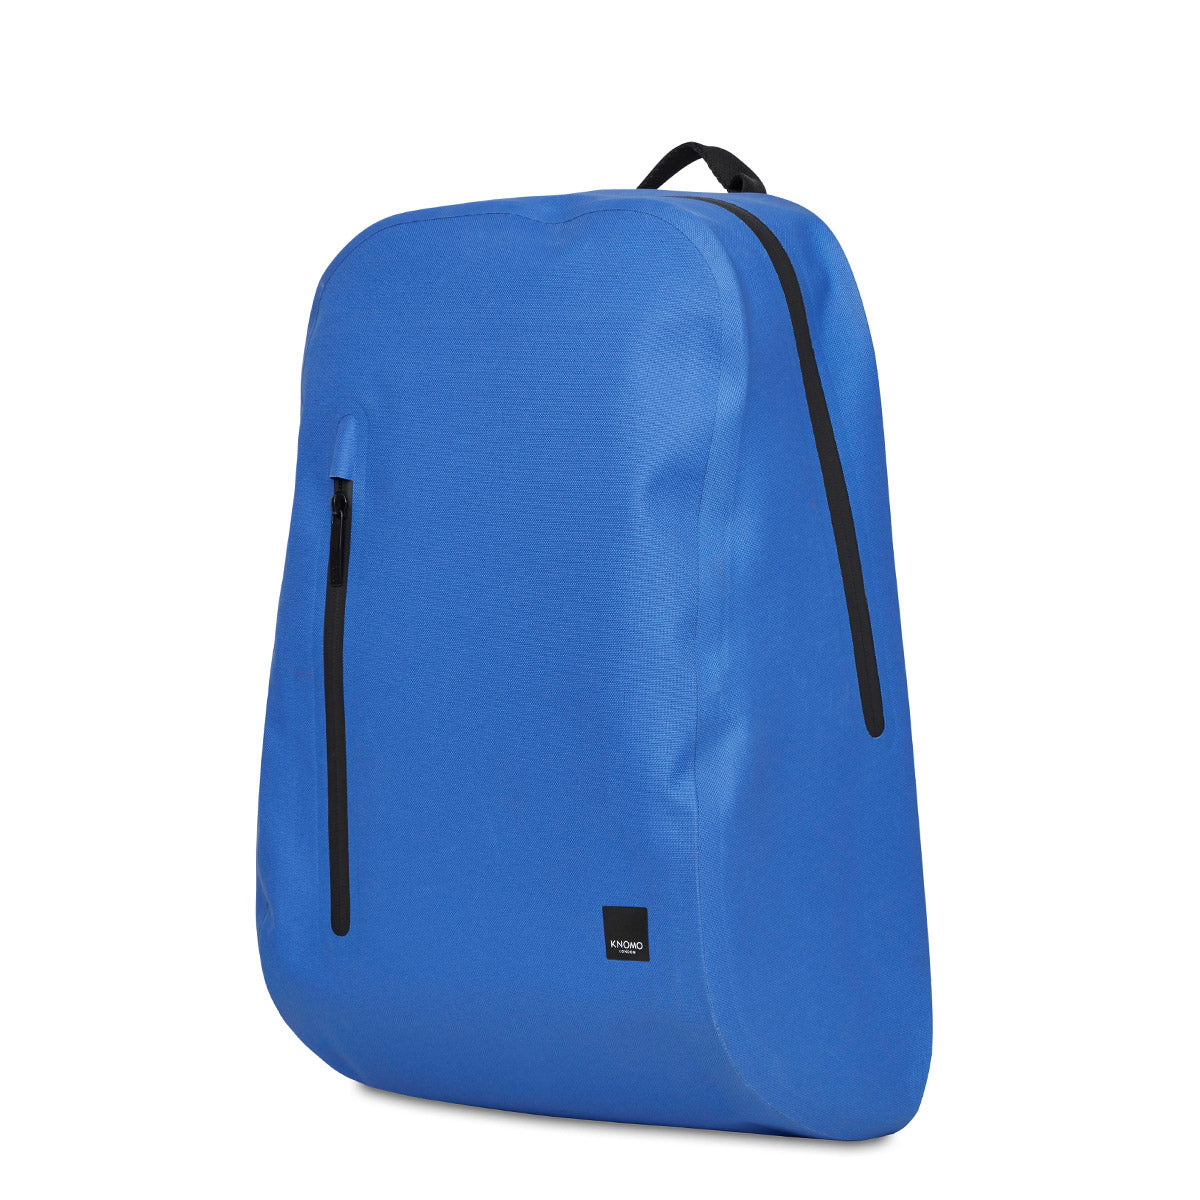 "Harpsden Waterproof Laptop Backpack - 14"" -  14""  